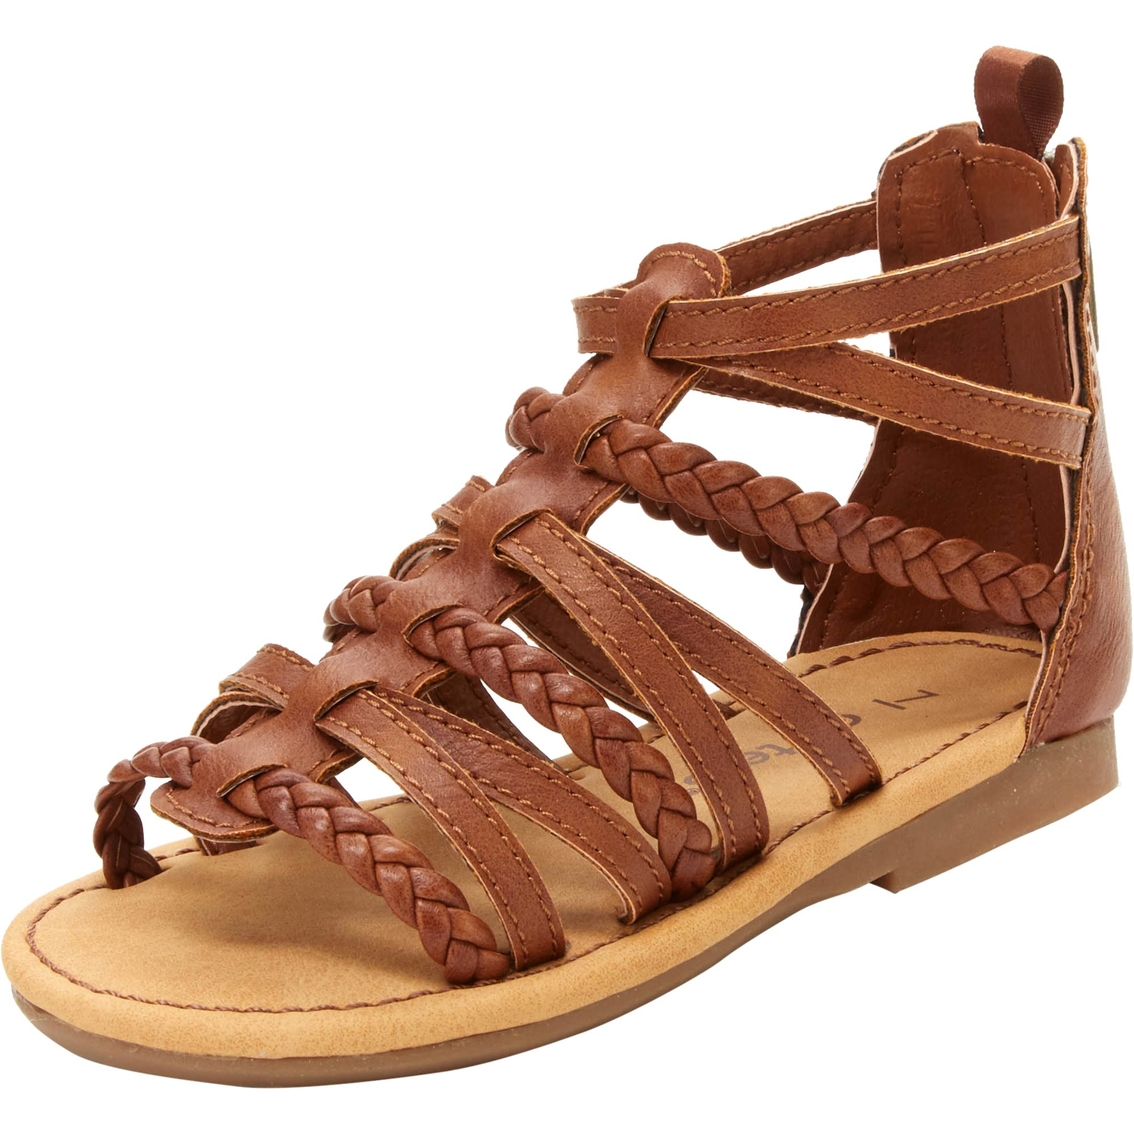 bf3bffe8862 Carter s Toddler Girls Smile2 Gladiator Sandals